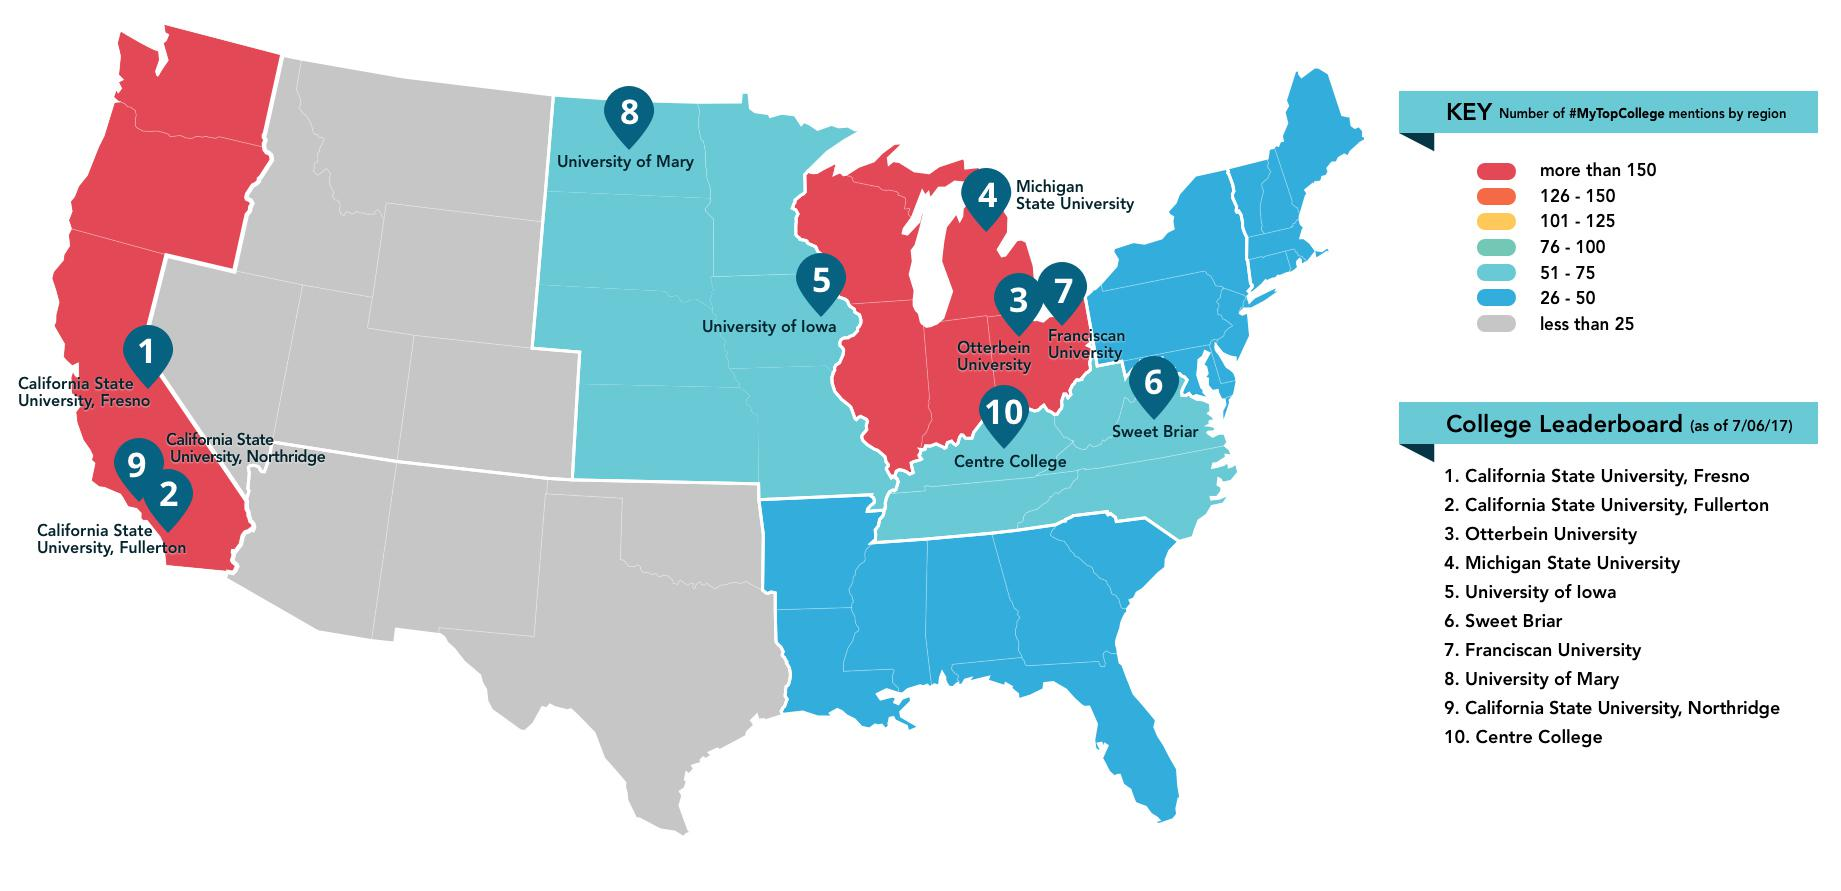 My Top College - Map of us colleges